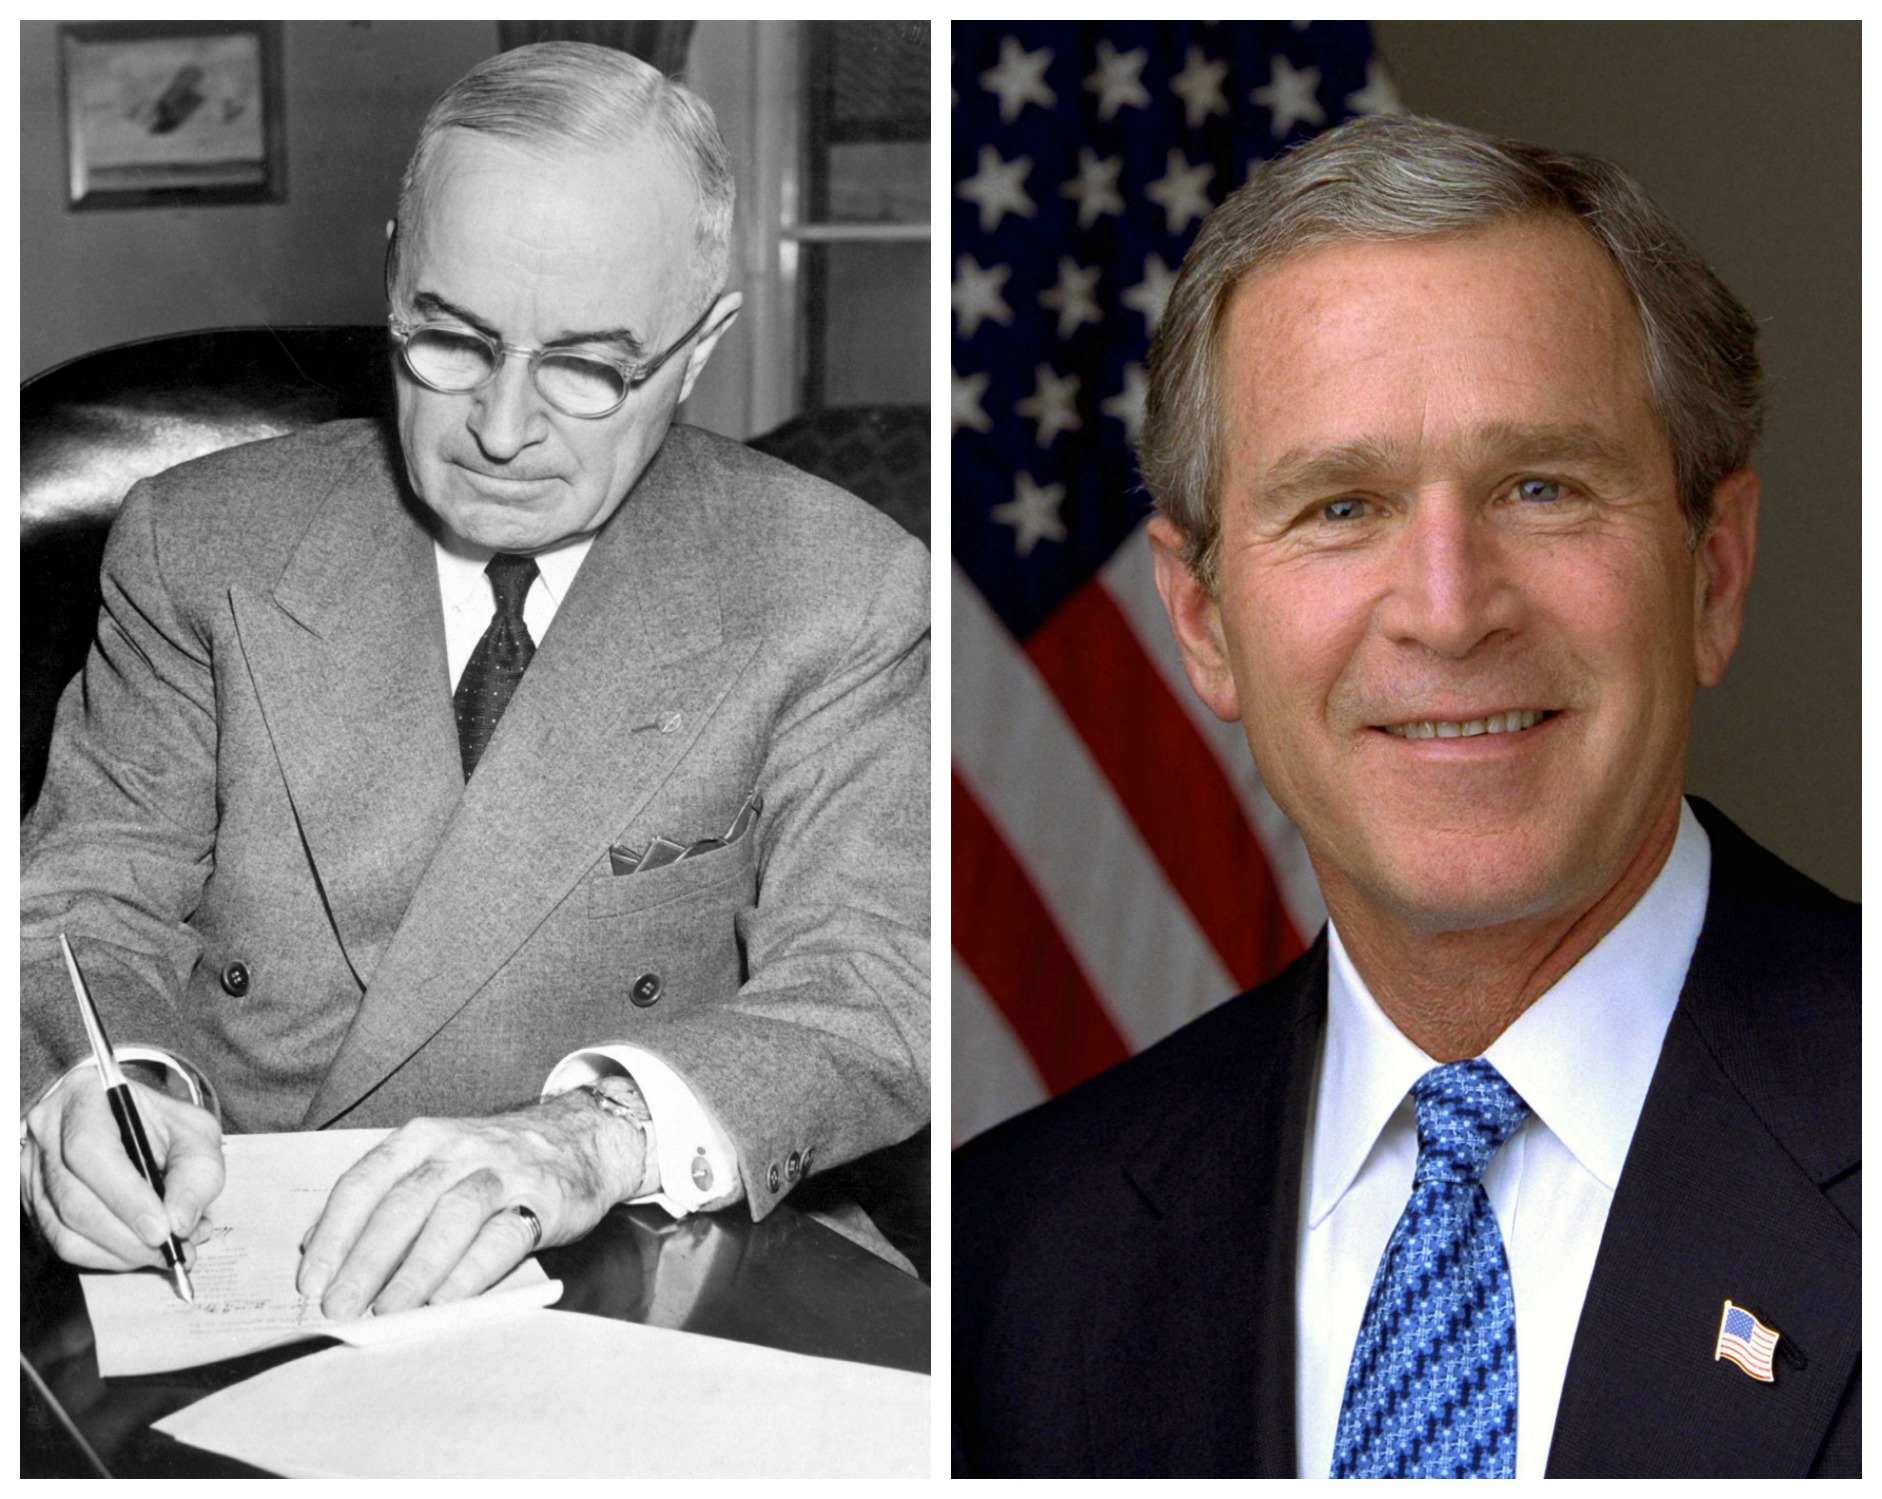 Harry Truman in one picture, and George W. Bush in the other